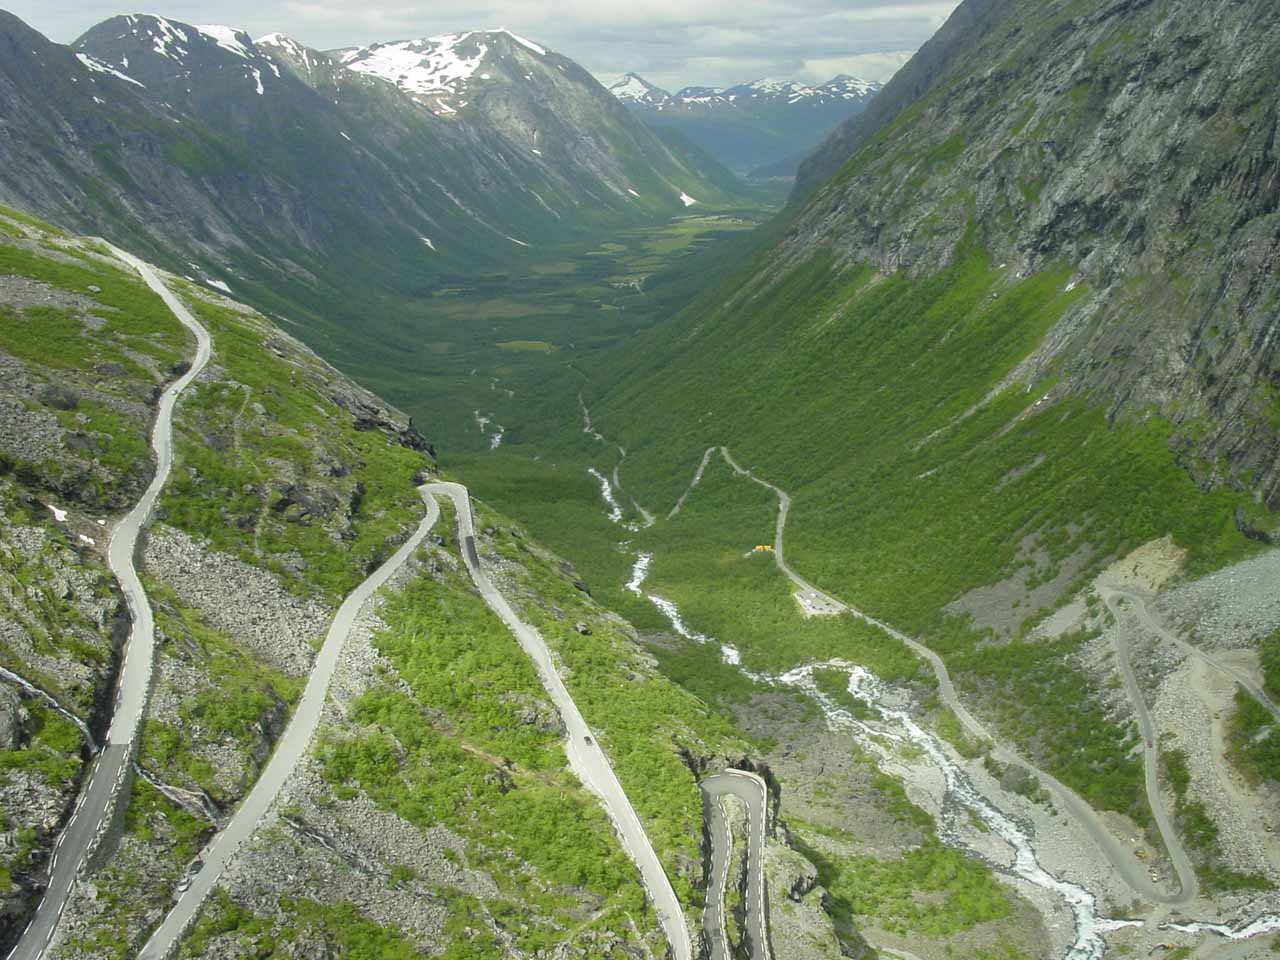 In Isterdalen Valley to the west of Romsdalen was the impressive serpentine road known as Trollstigen, which steeply wound its way up the head of the valley wall between a pair of waterfalls